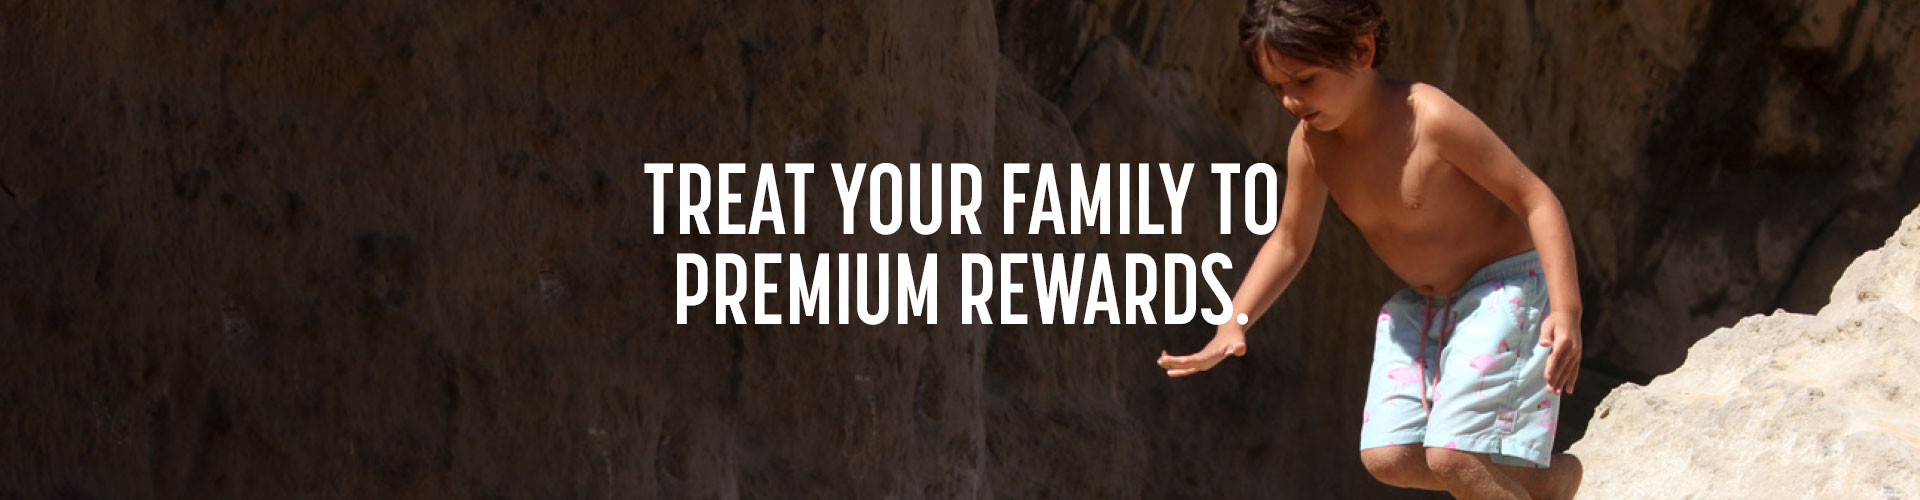 Treat your family to premium rewards.